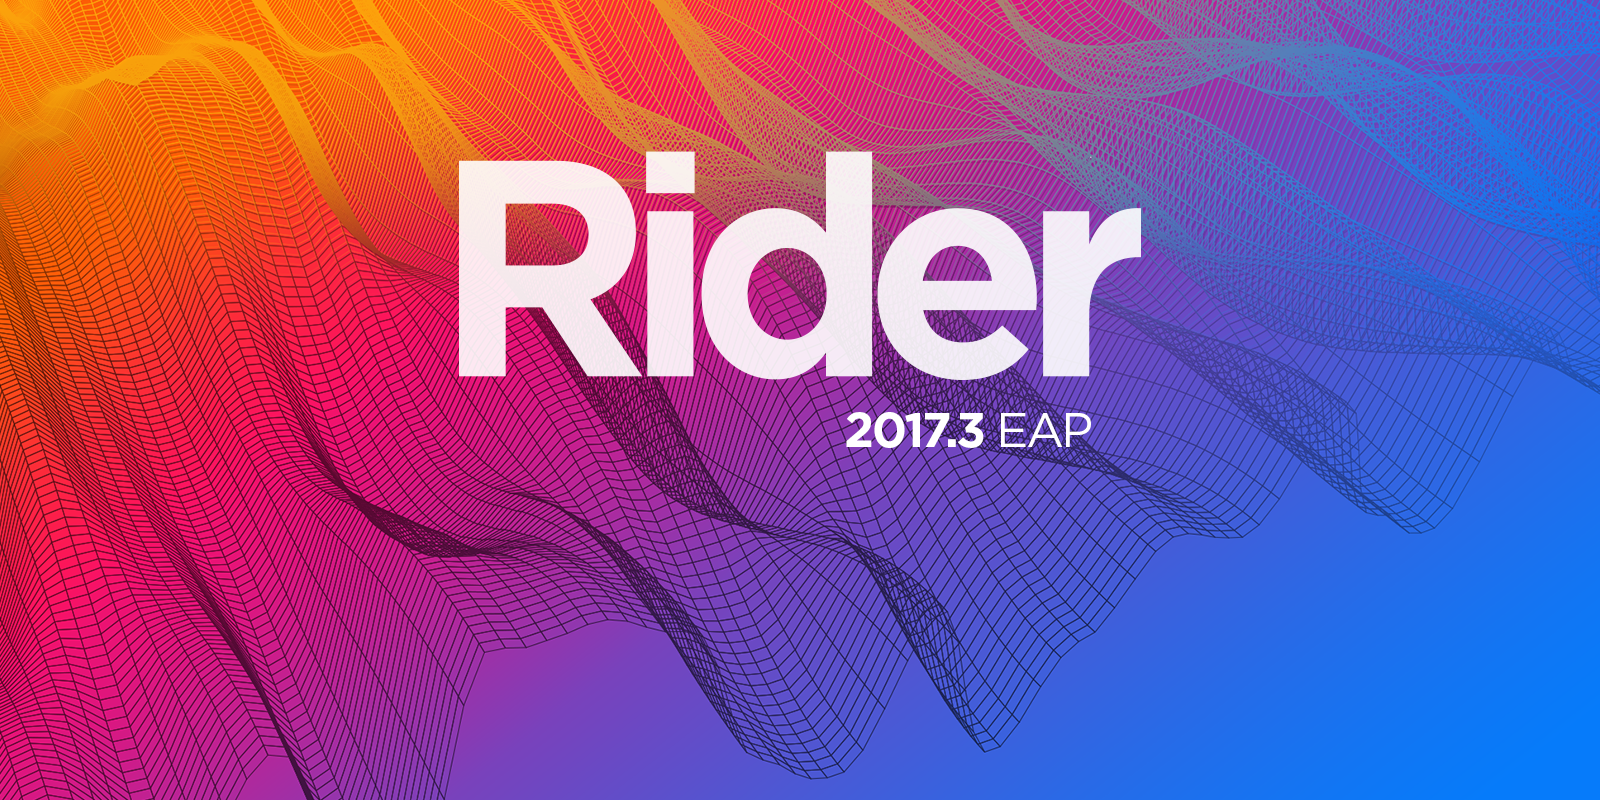 Rider 2017.3 Early Access Program is open